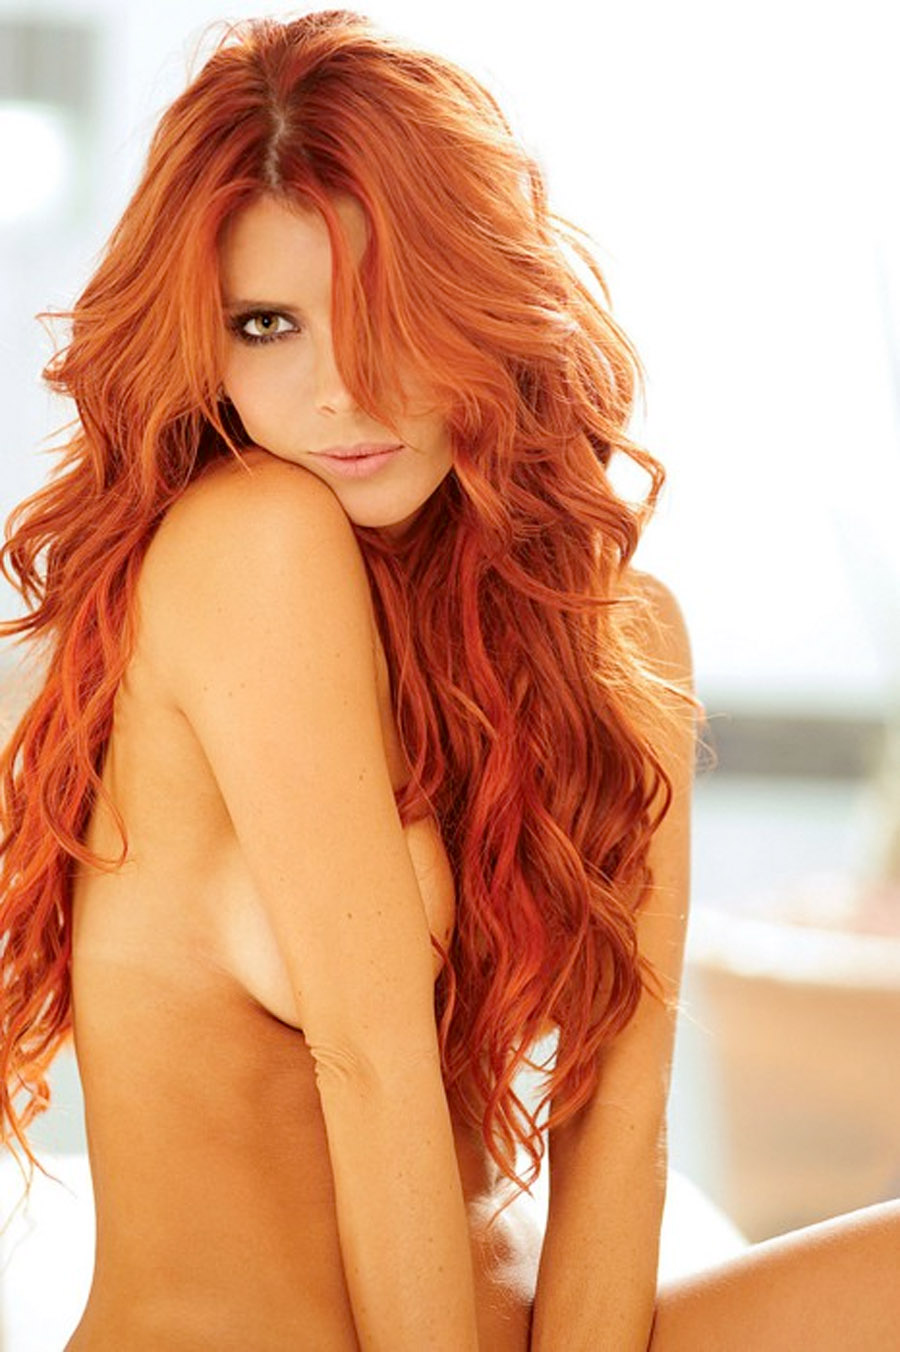 Nice love hot redheads babes How